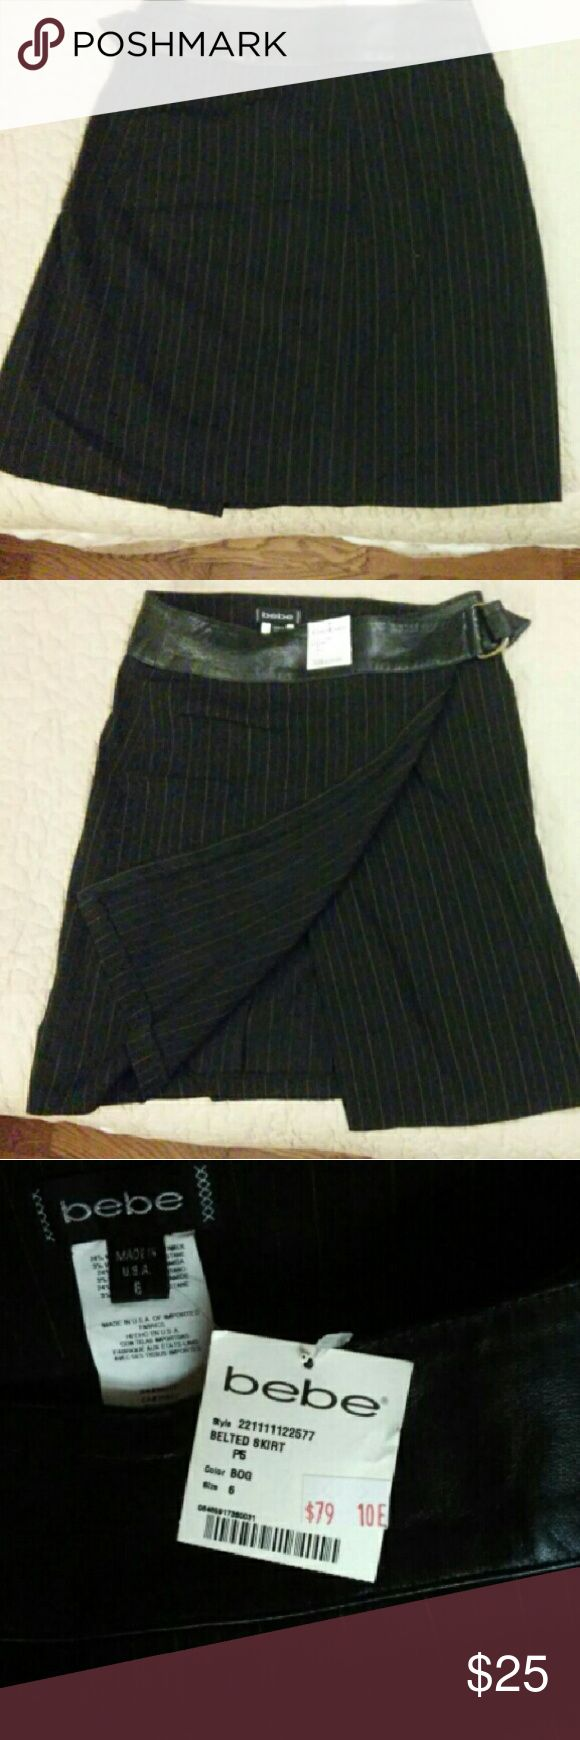 NWT BeBe Belted Skirt Brand new professional skirt. Faux leather belt . bebe Skirts Pencil